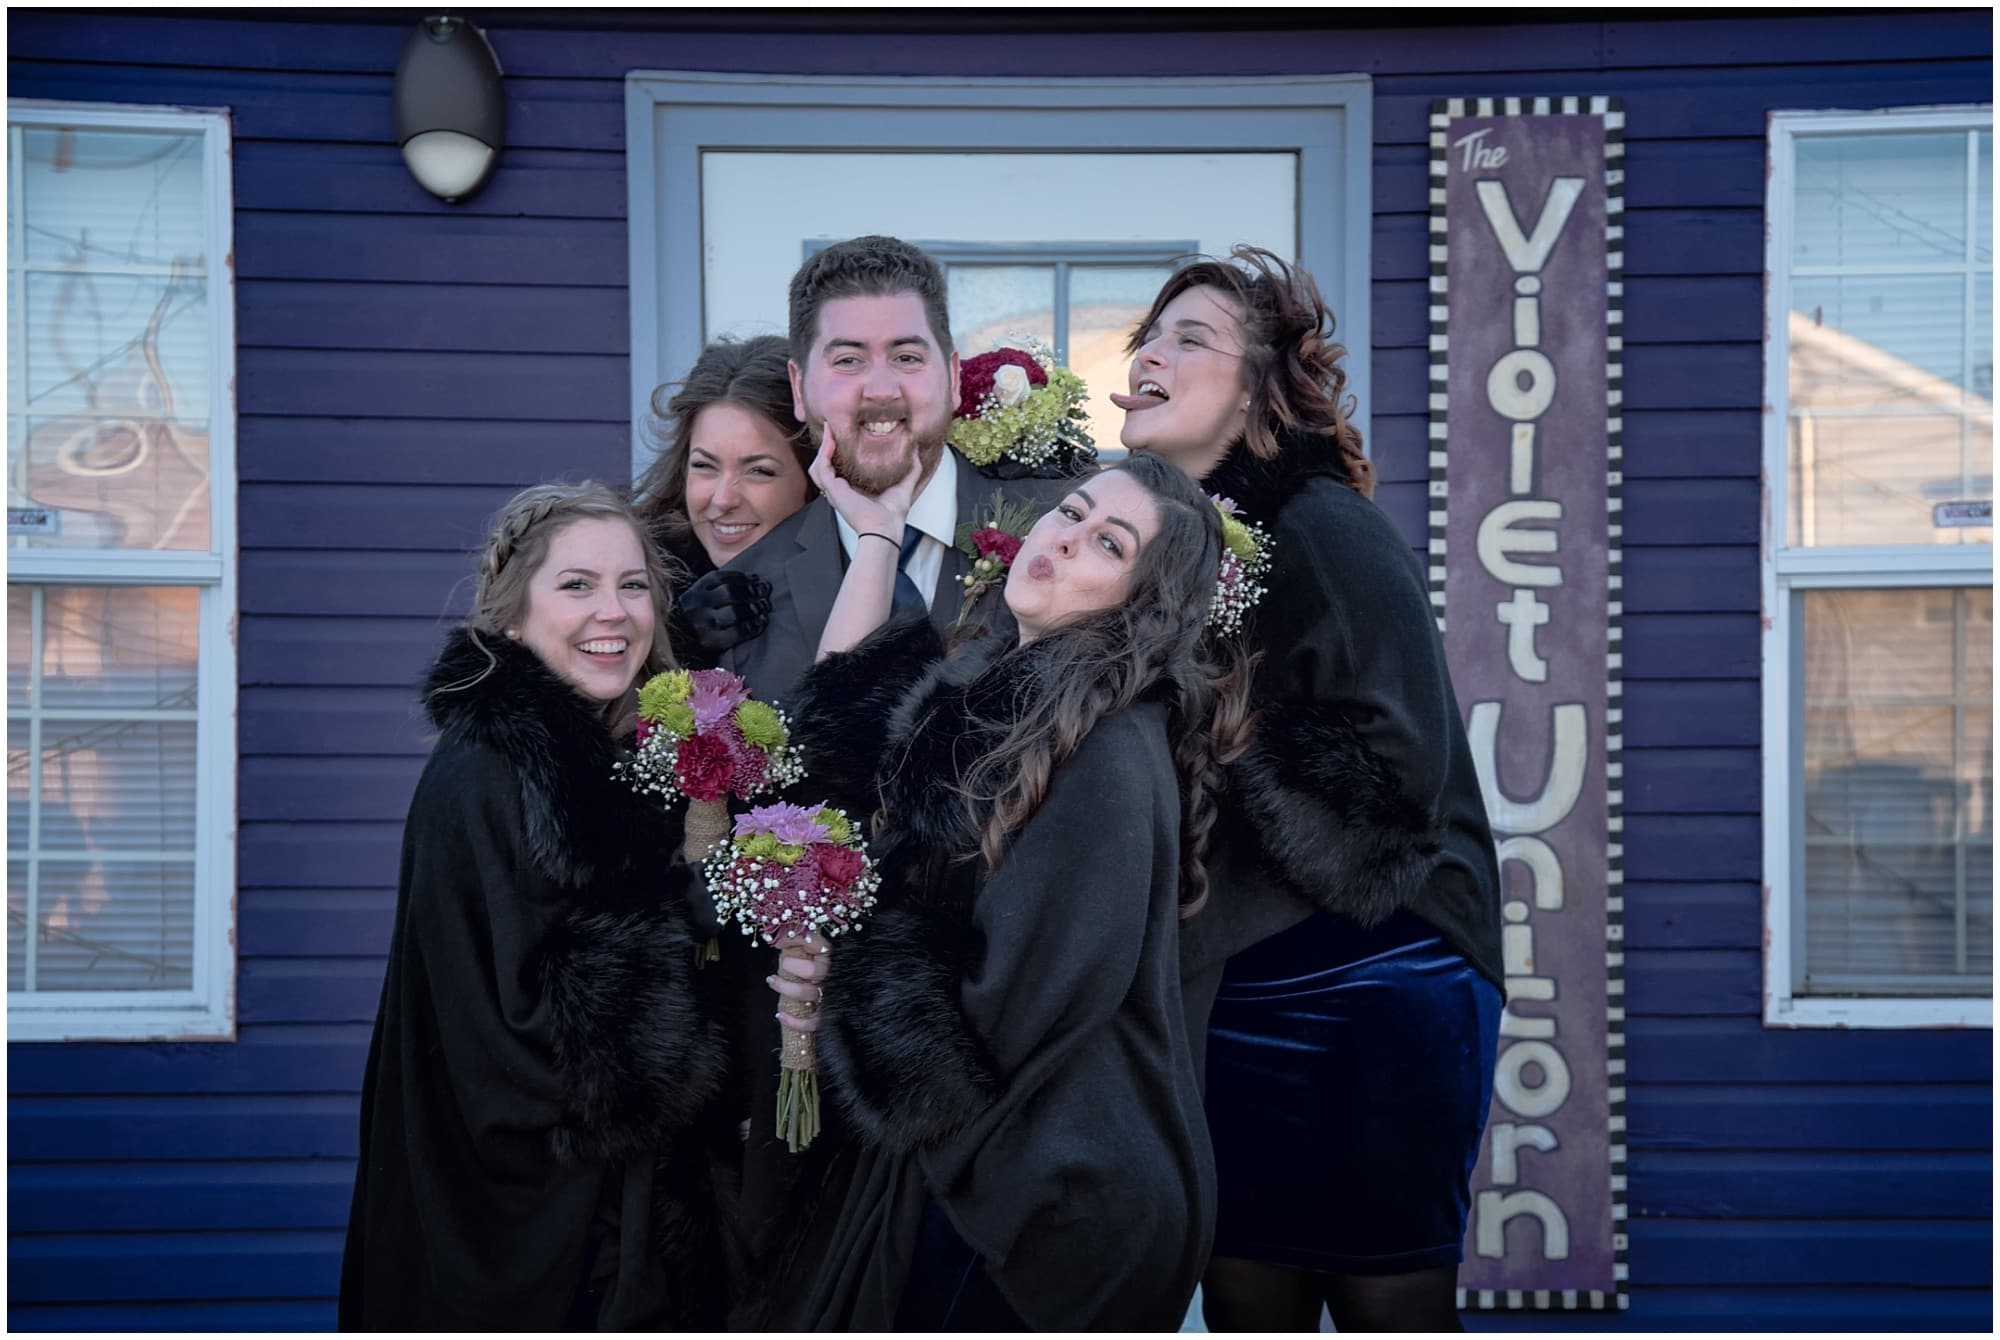 The groom with bridesmaids posing for funny wedding party photos at Fisherman's Cove in Eastern Passage, NS.